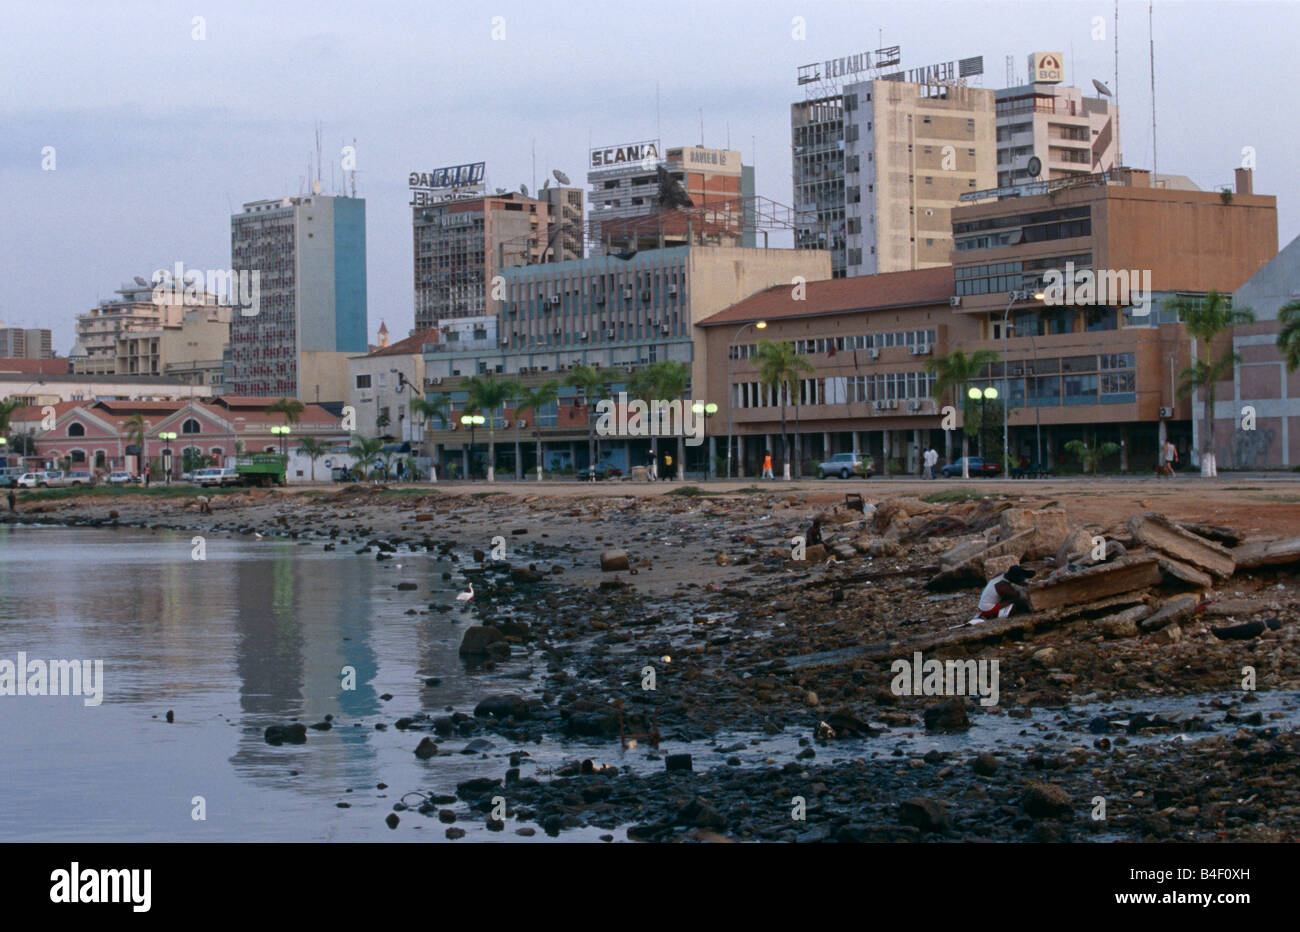 Polluted beach and tower block city skyline, Luanda, Angola, Africa - Stock Image